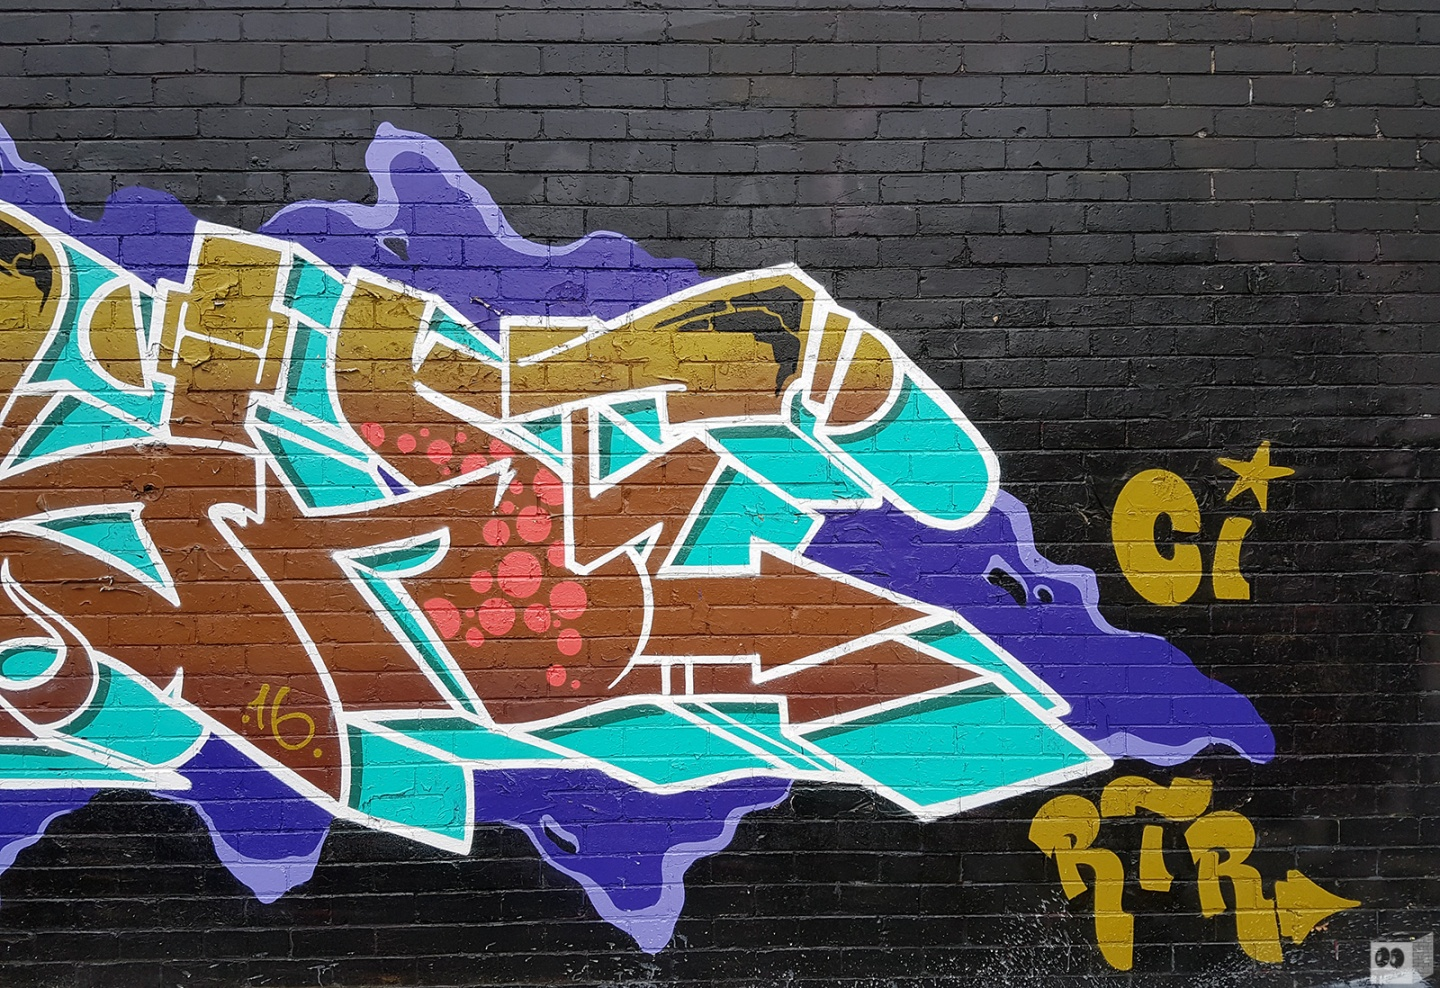 the-fourth-walls-melbourne-graffiti-ikon-sage-2flash-collingwood3